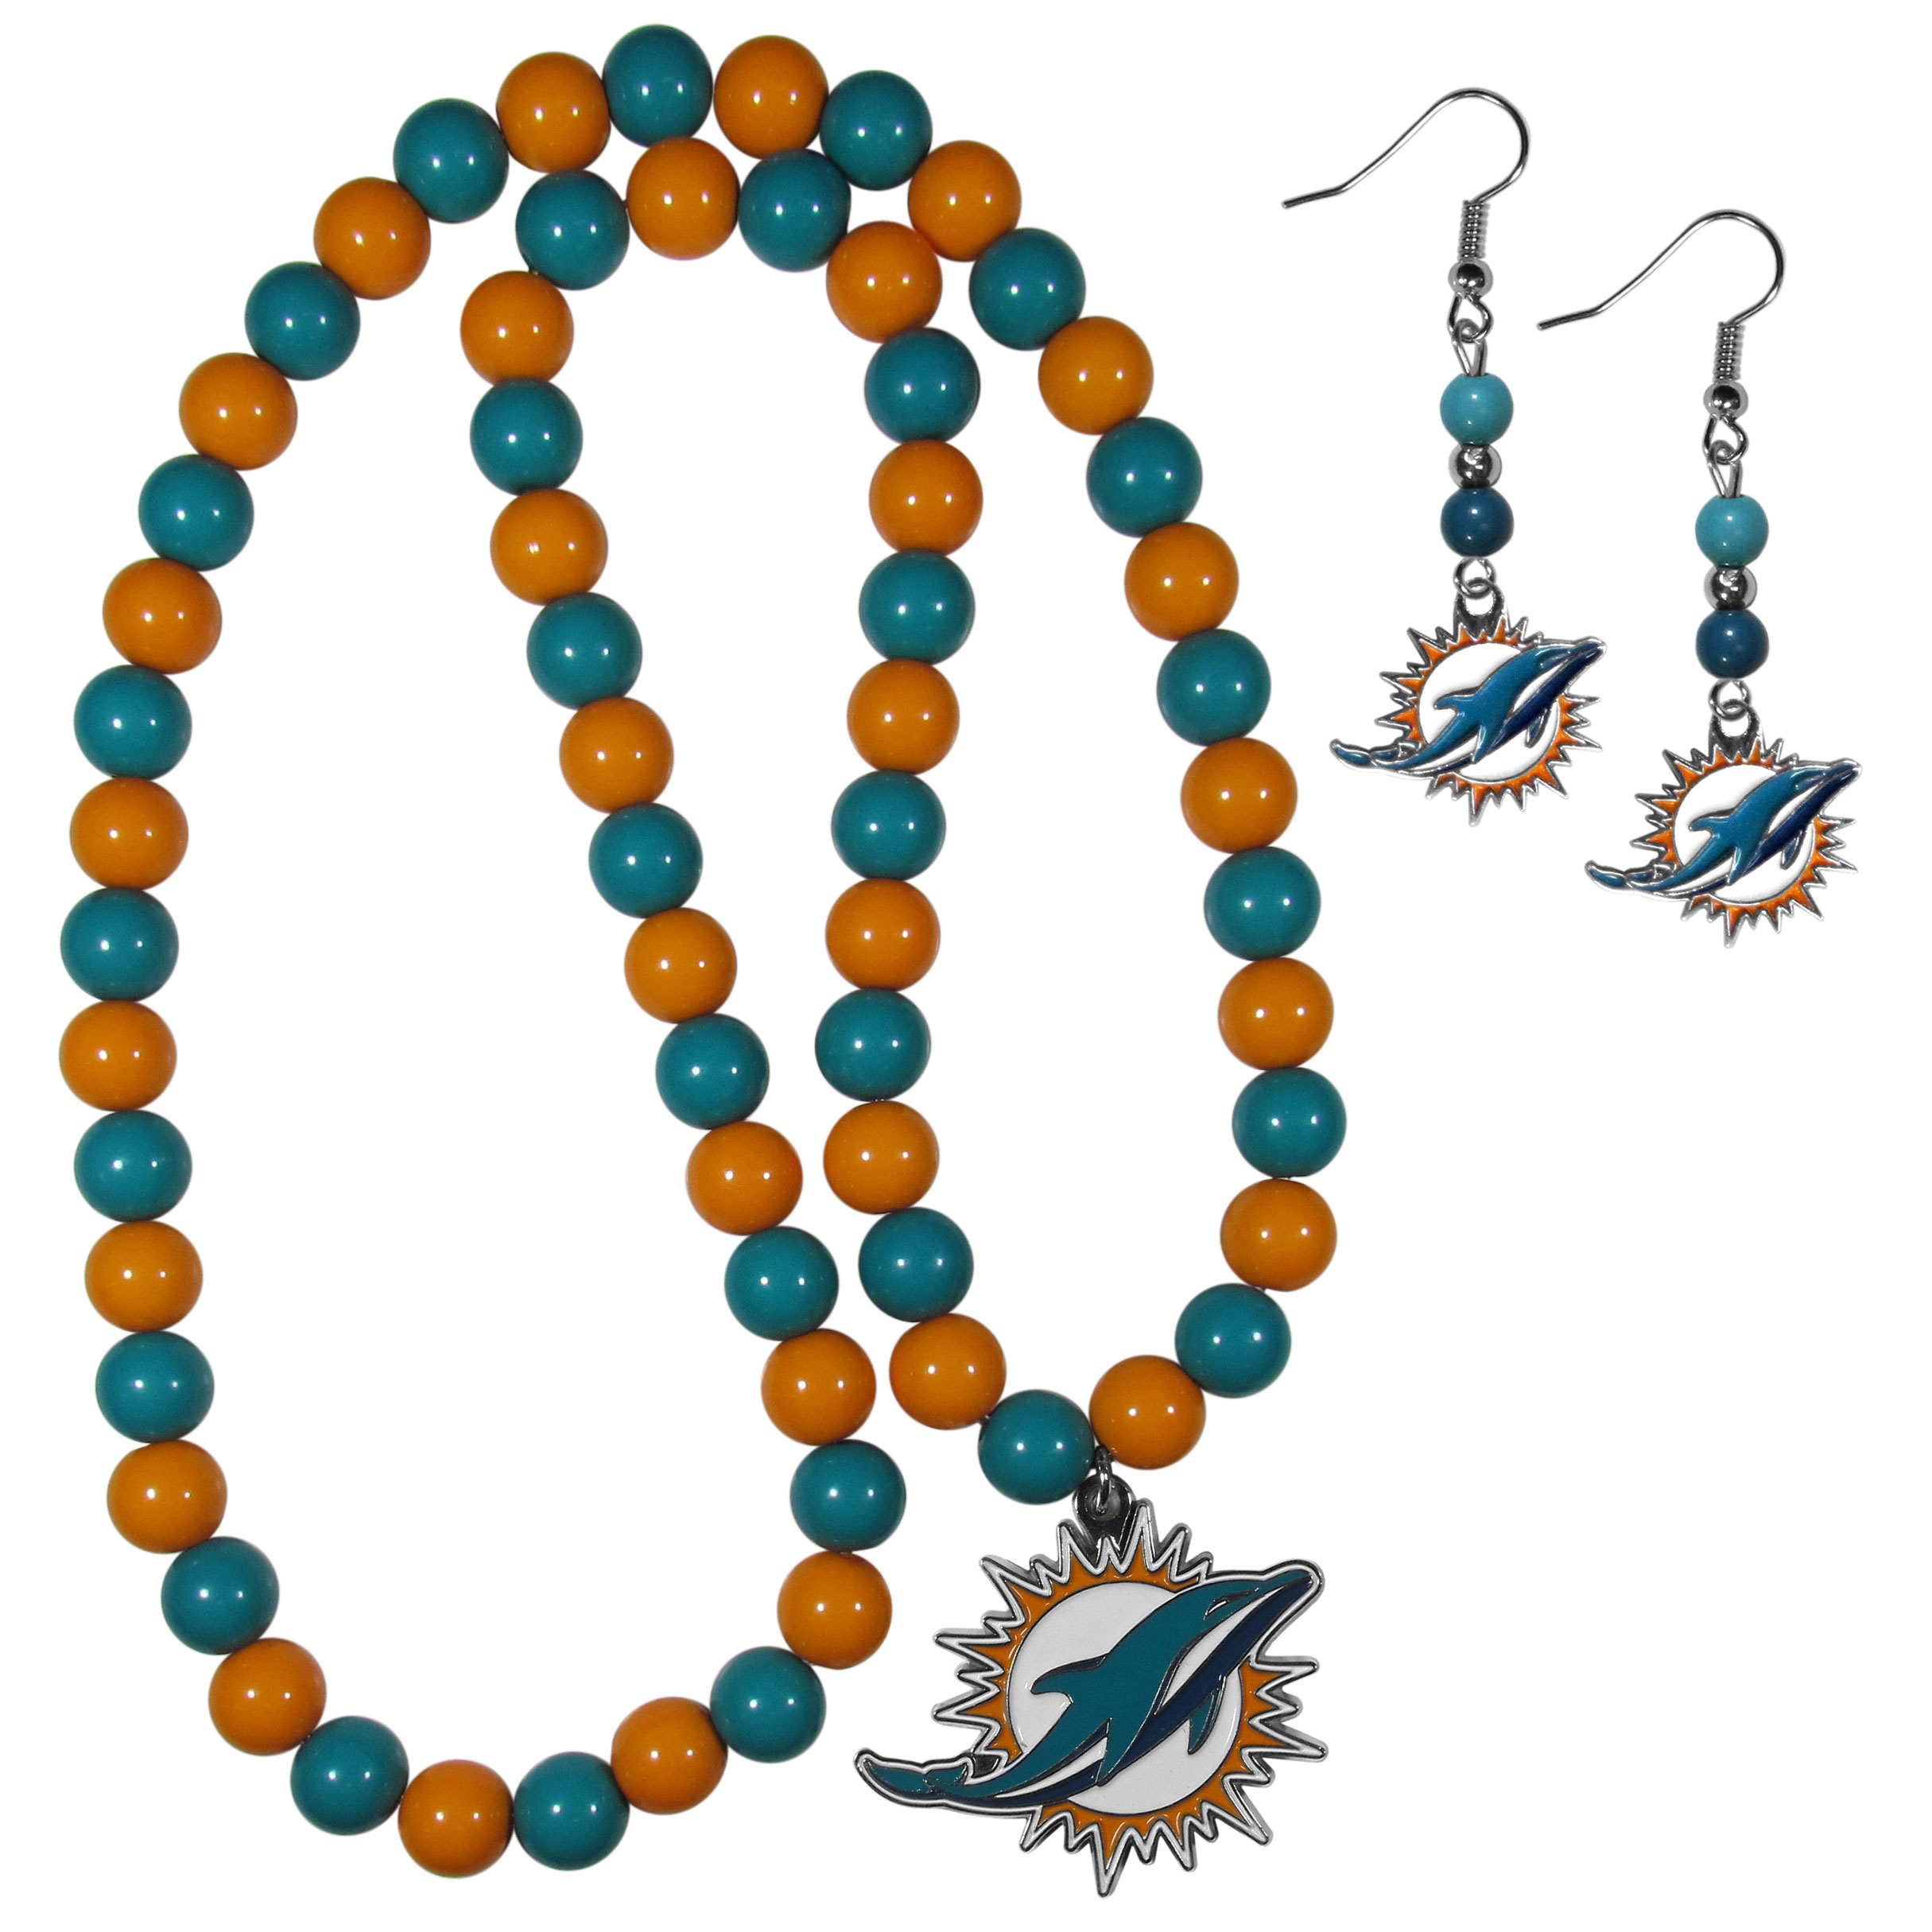 Miami Dolphins Fan Bead Earrings and Necklace Set - These fun and colorful Miami Dolphins fan bead jewelry pieces are an eyecatching way to show off your team spirit. The earrings feature hypoallergenic, nickel free fishhook post and 2 team colored beads with a beautifully carved team charm to finish this attractive dangle look. The mathcing bracelet has alternating team colored beads on a stretch cord and features a matching team charm.